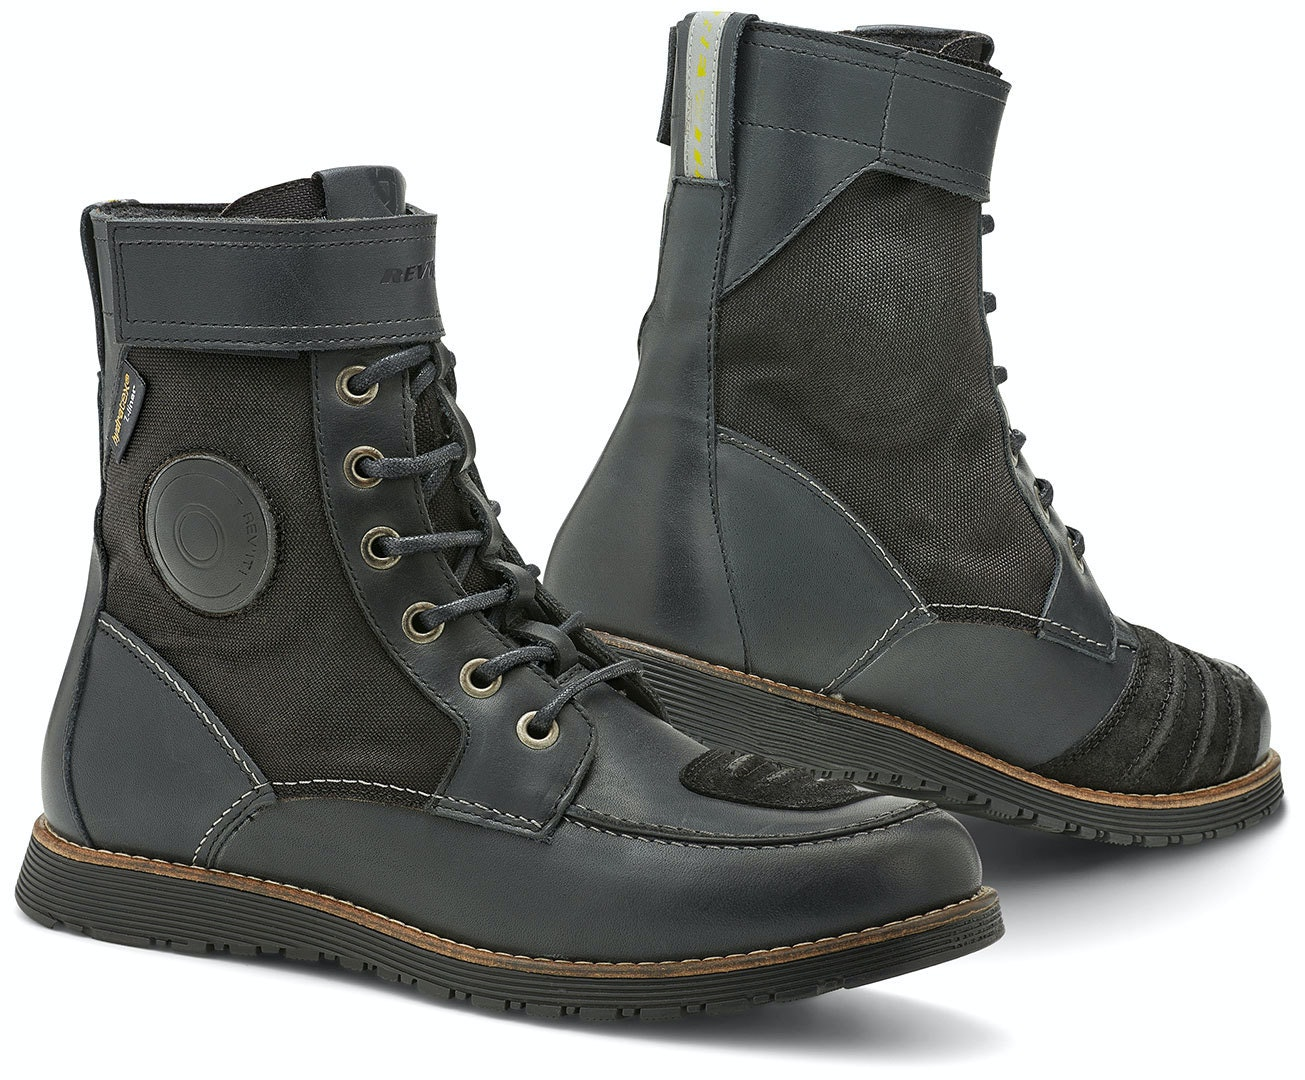 Revit Royale H20 Boots sweepstakes